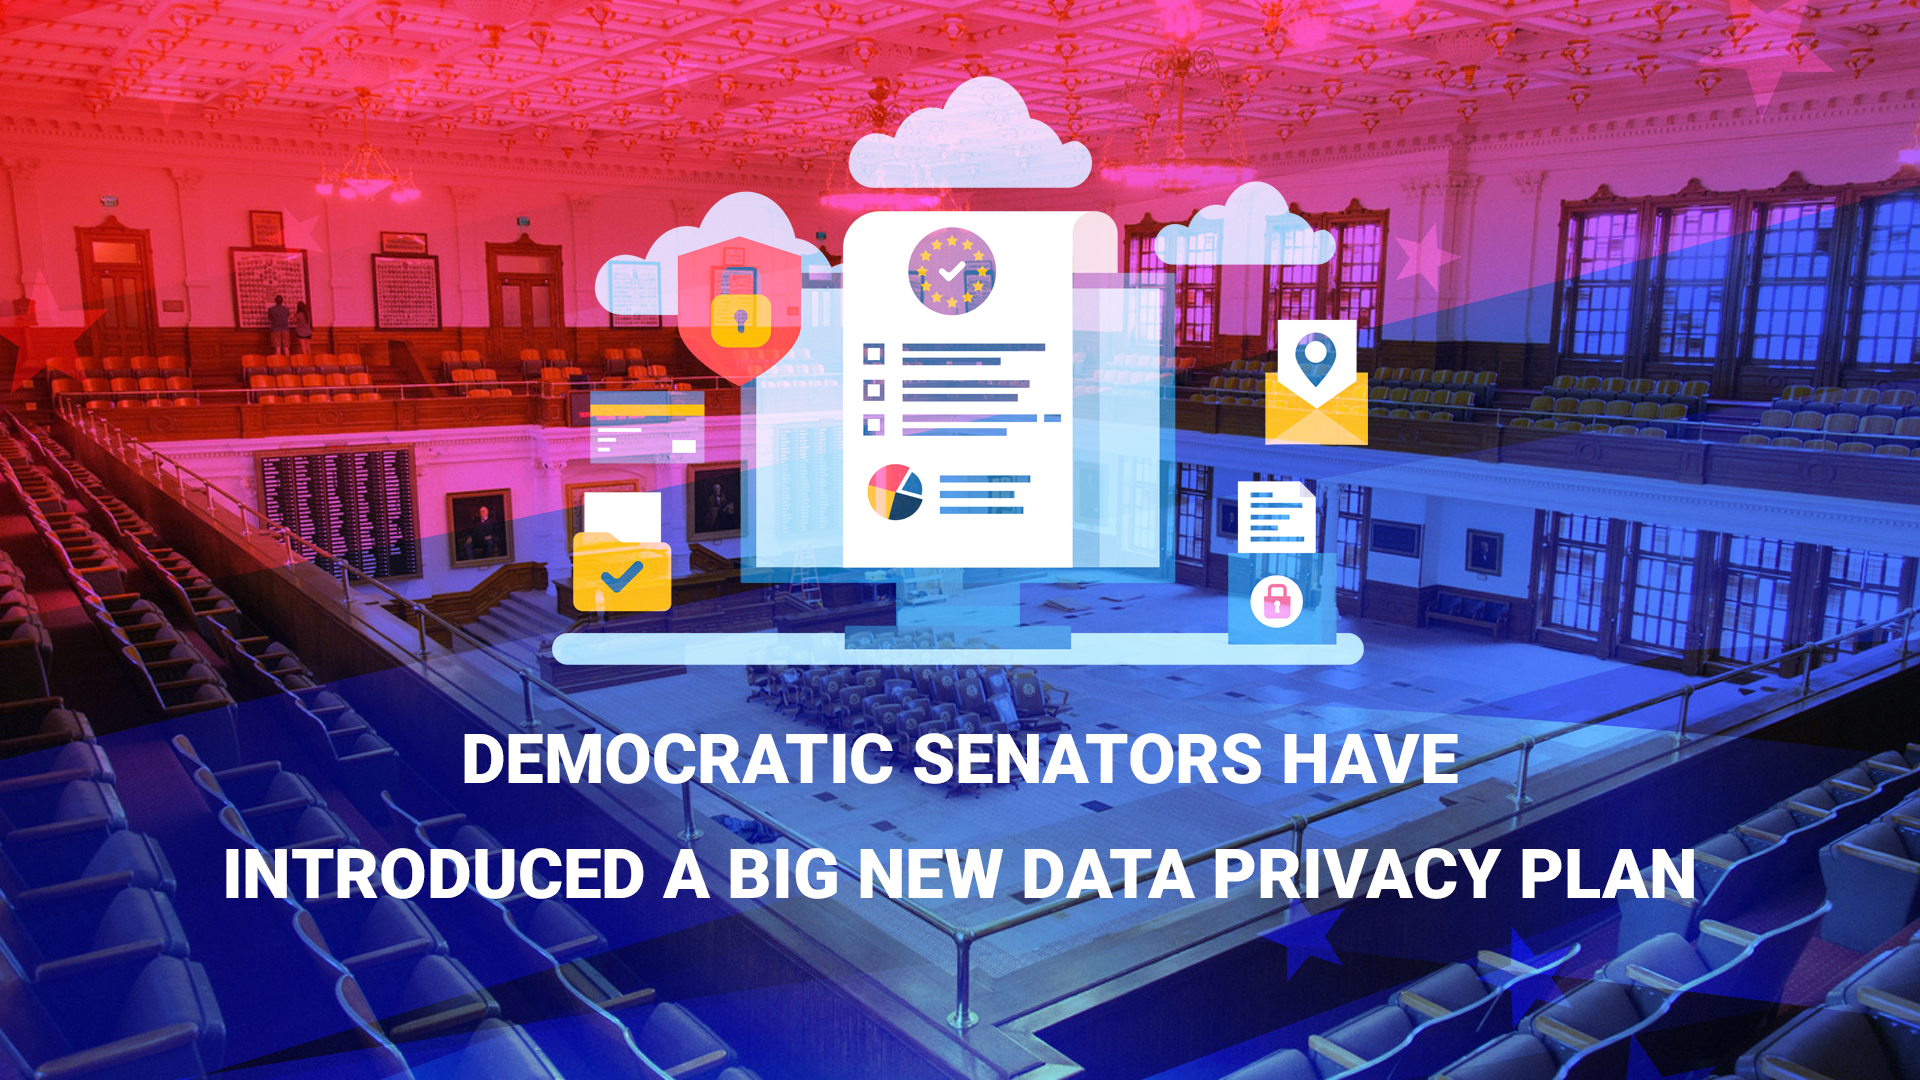 Democratic senators have introduced a big new data privacy plan